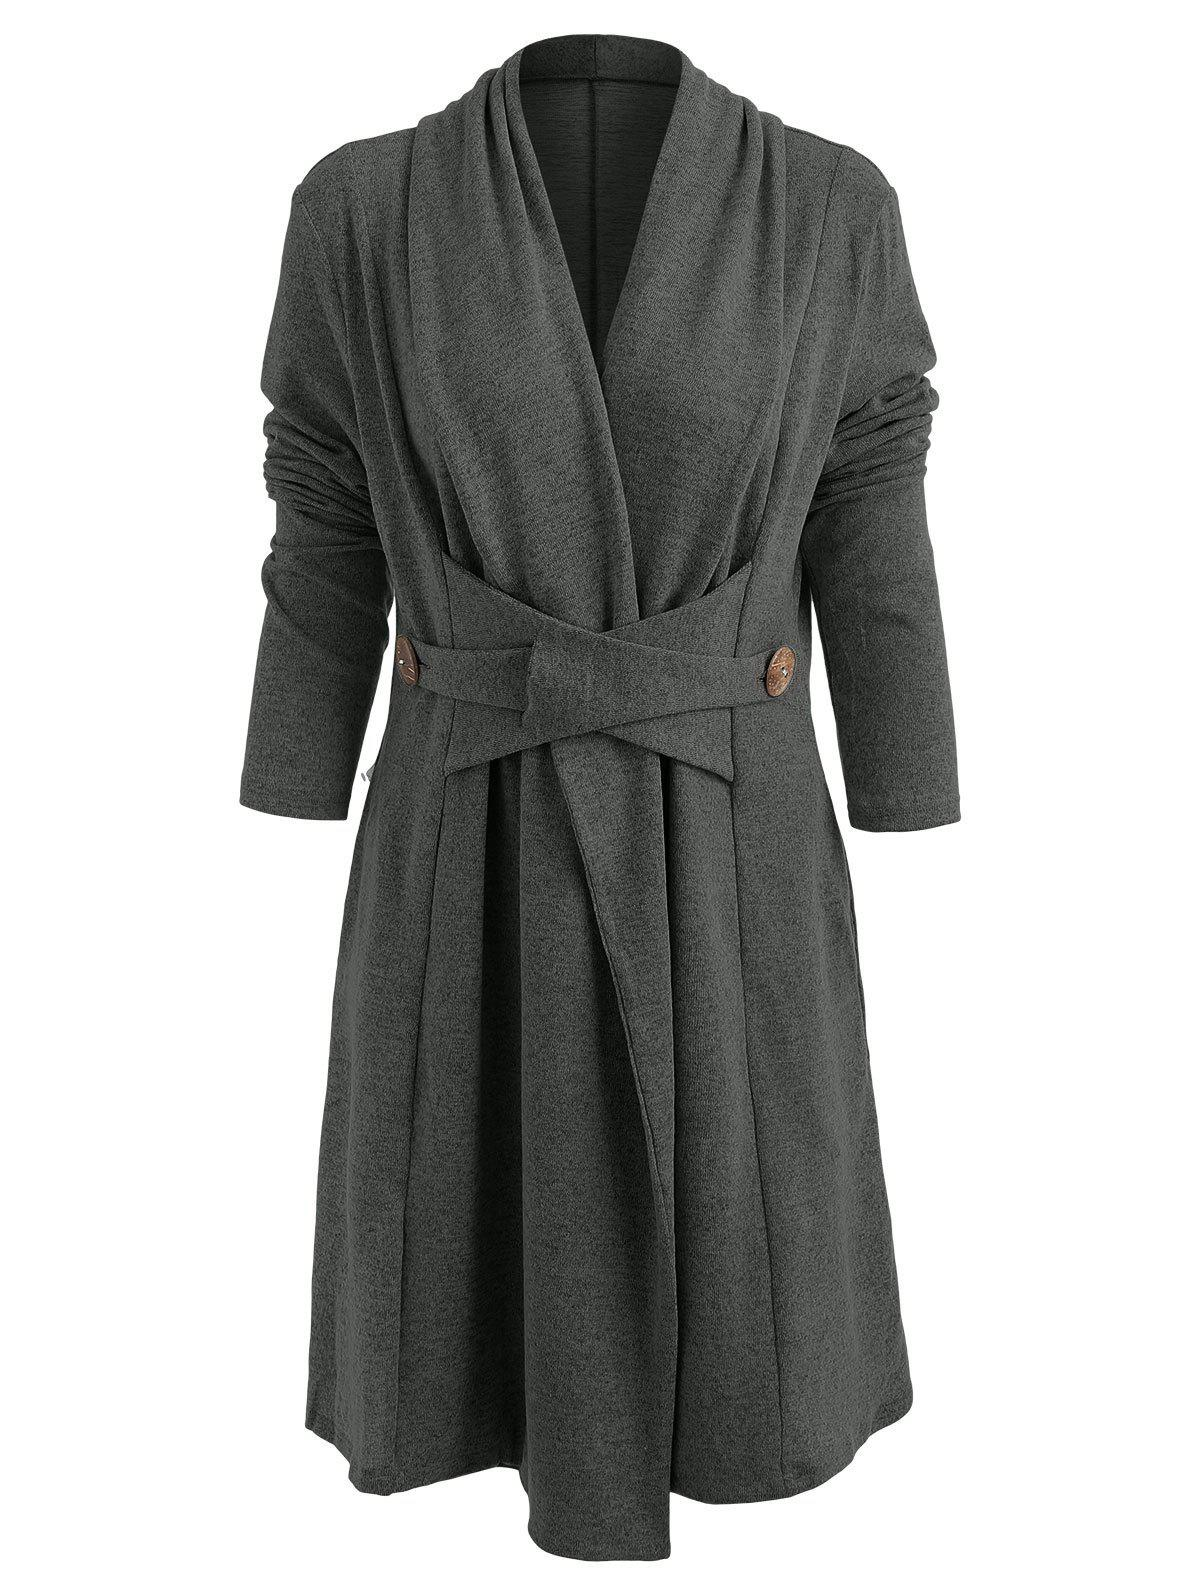 Open Front Button Long Duster Cardigan - DARK GRAY 2XL